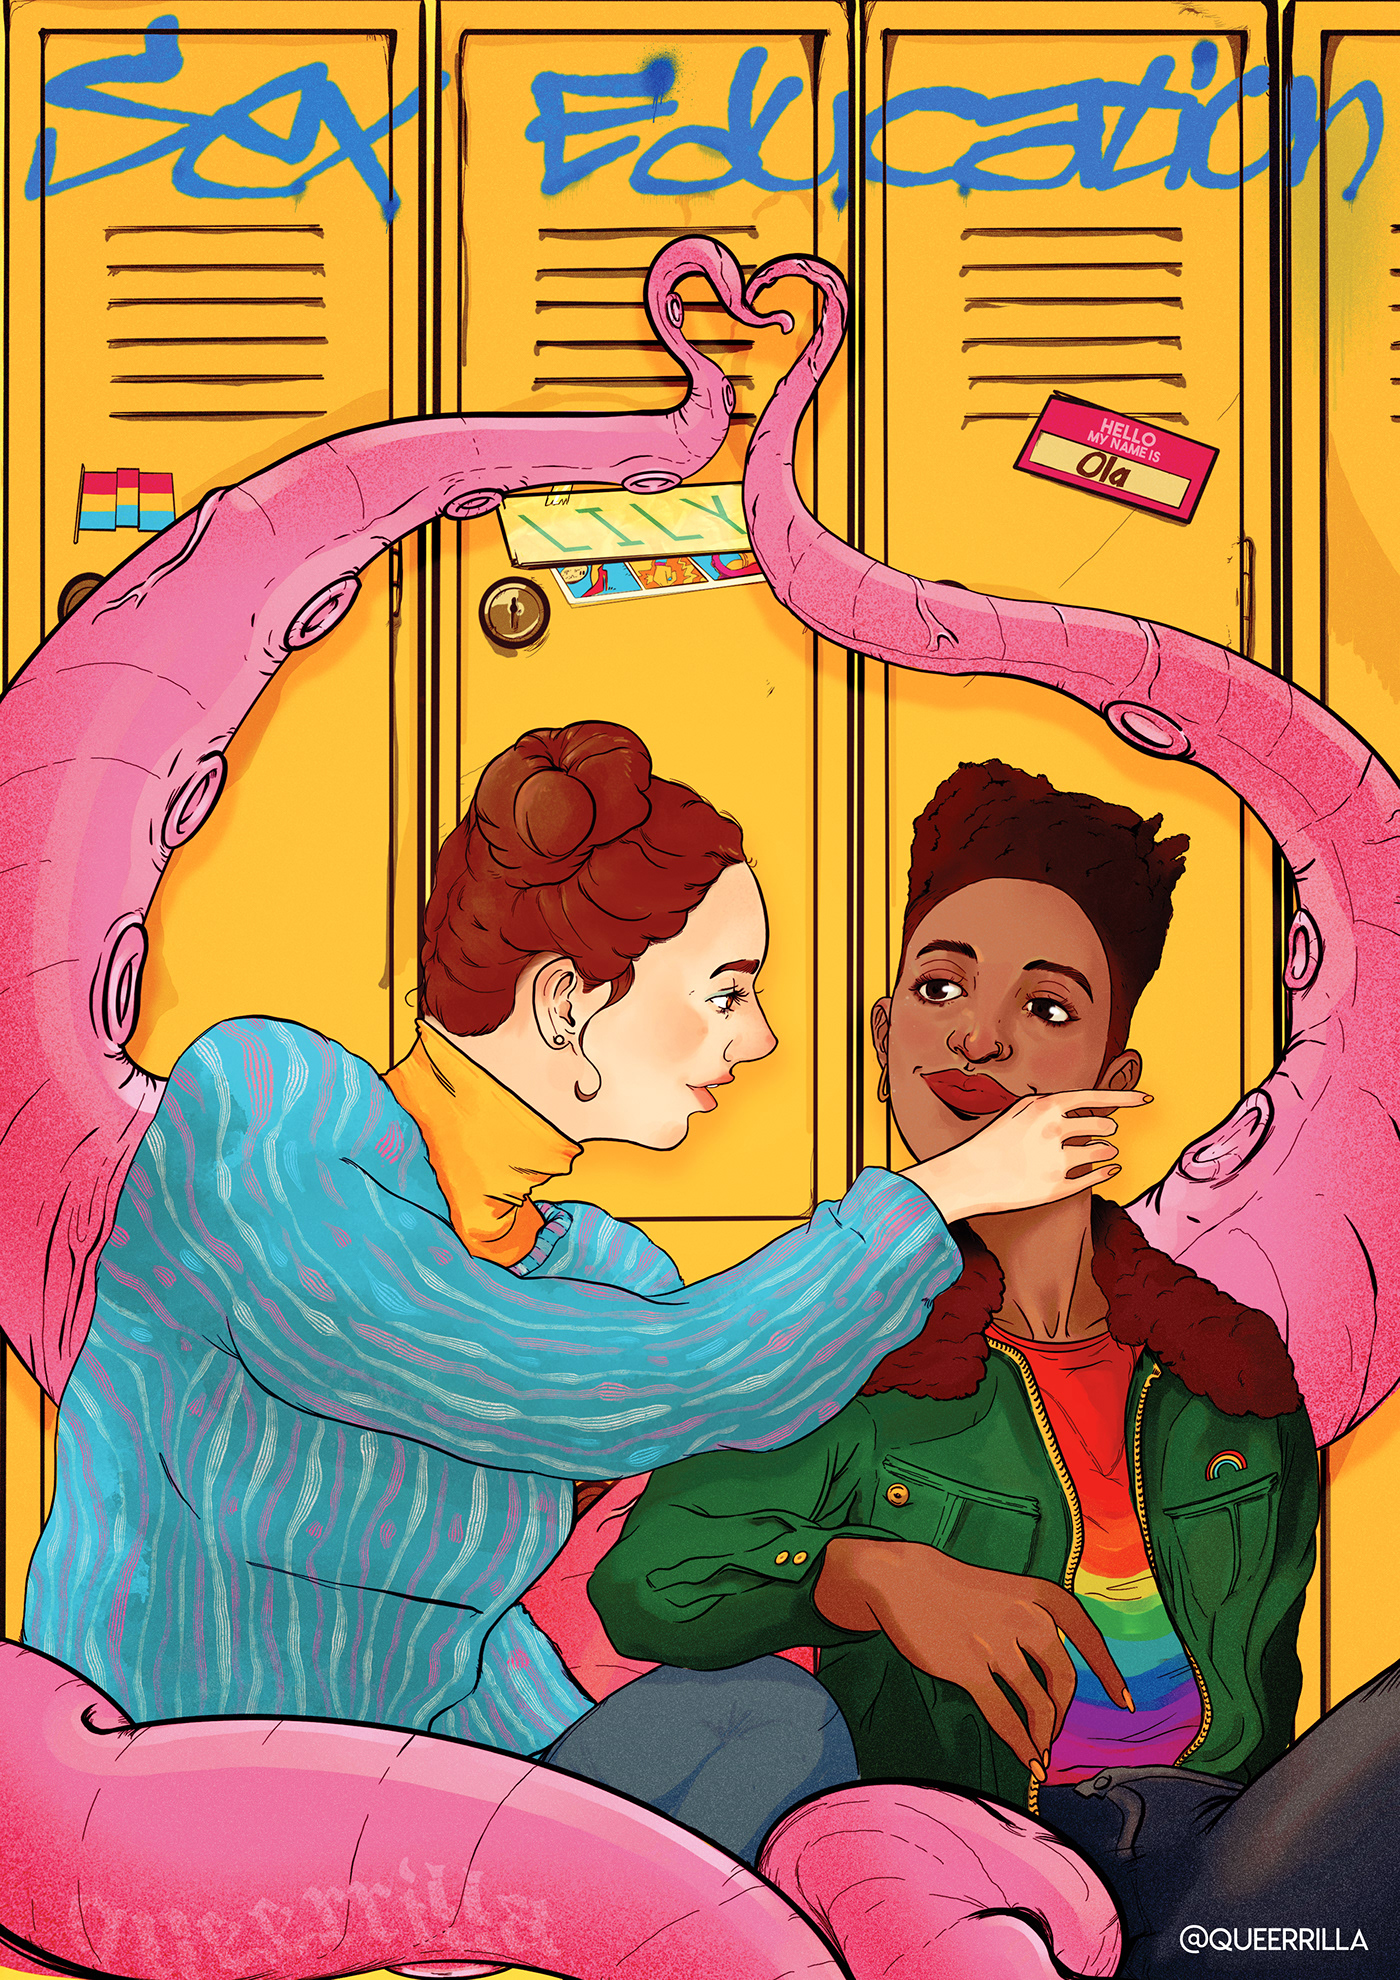 graphicdesign ILLUSTRATION  LGBTQ Netflix poster posters pride print queer tvshow